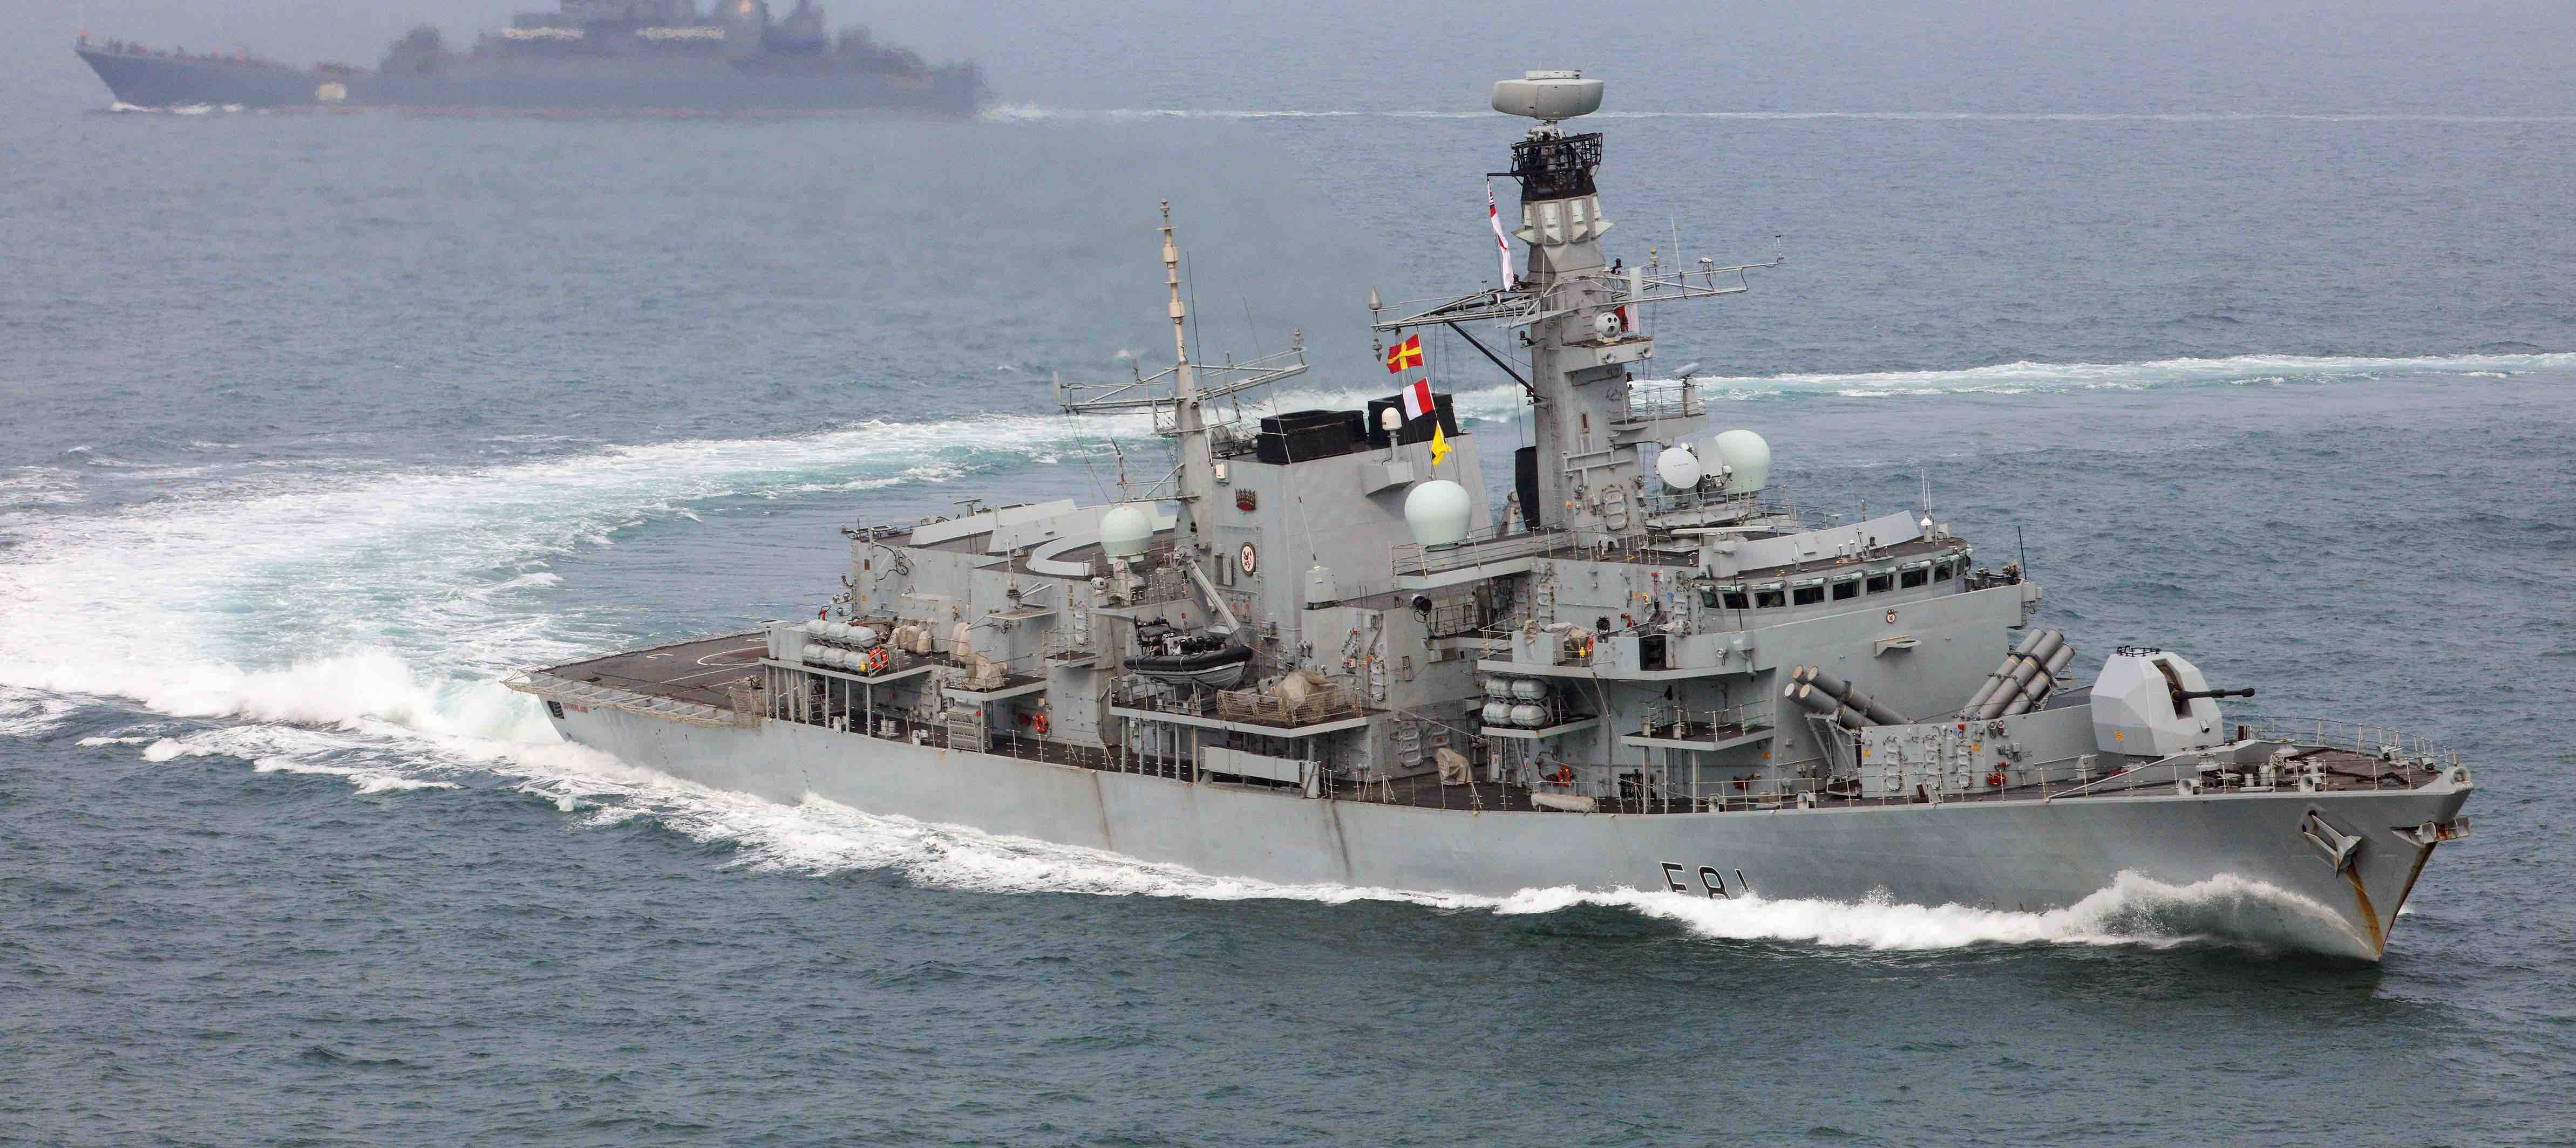 HMS Sutherland on patrol (Photo: Ministry of Defence, UK)